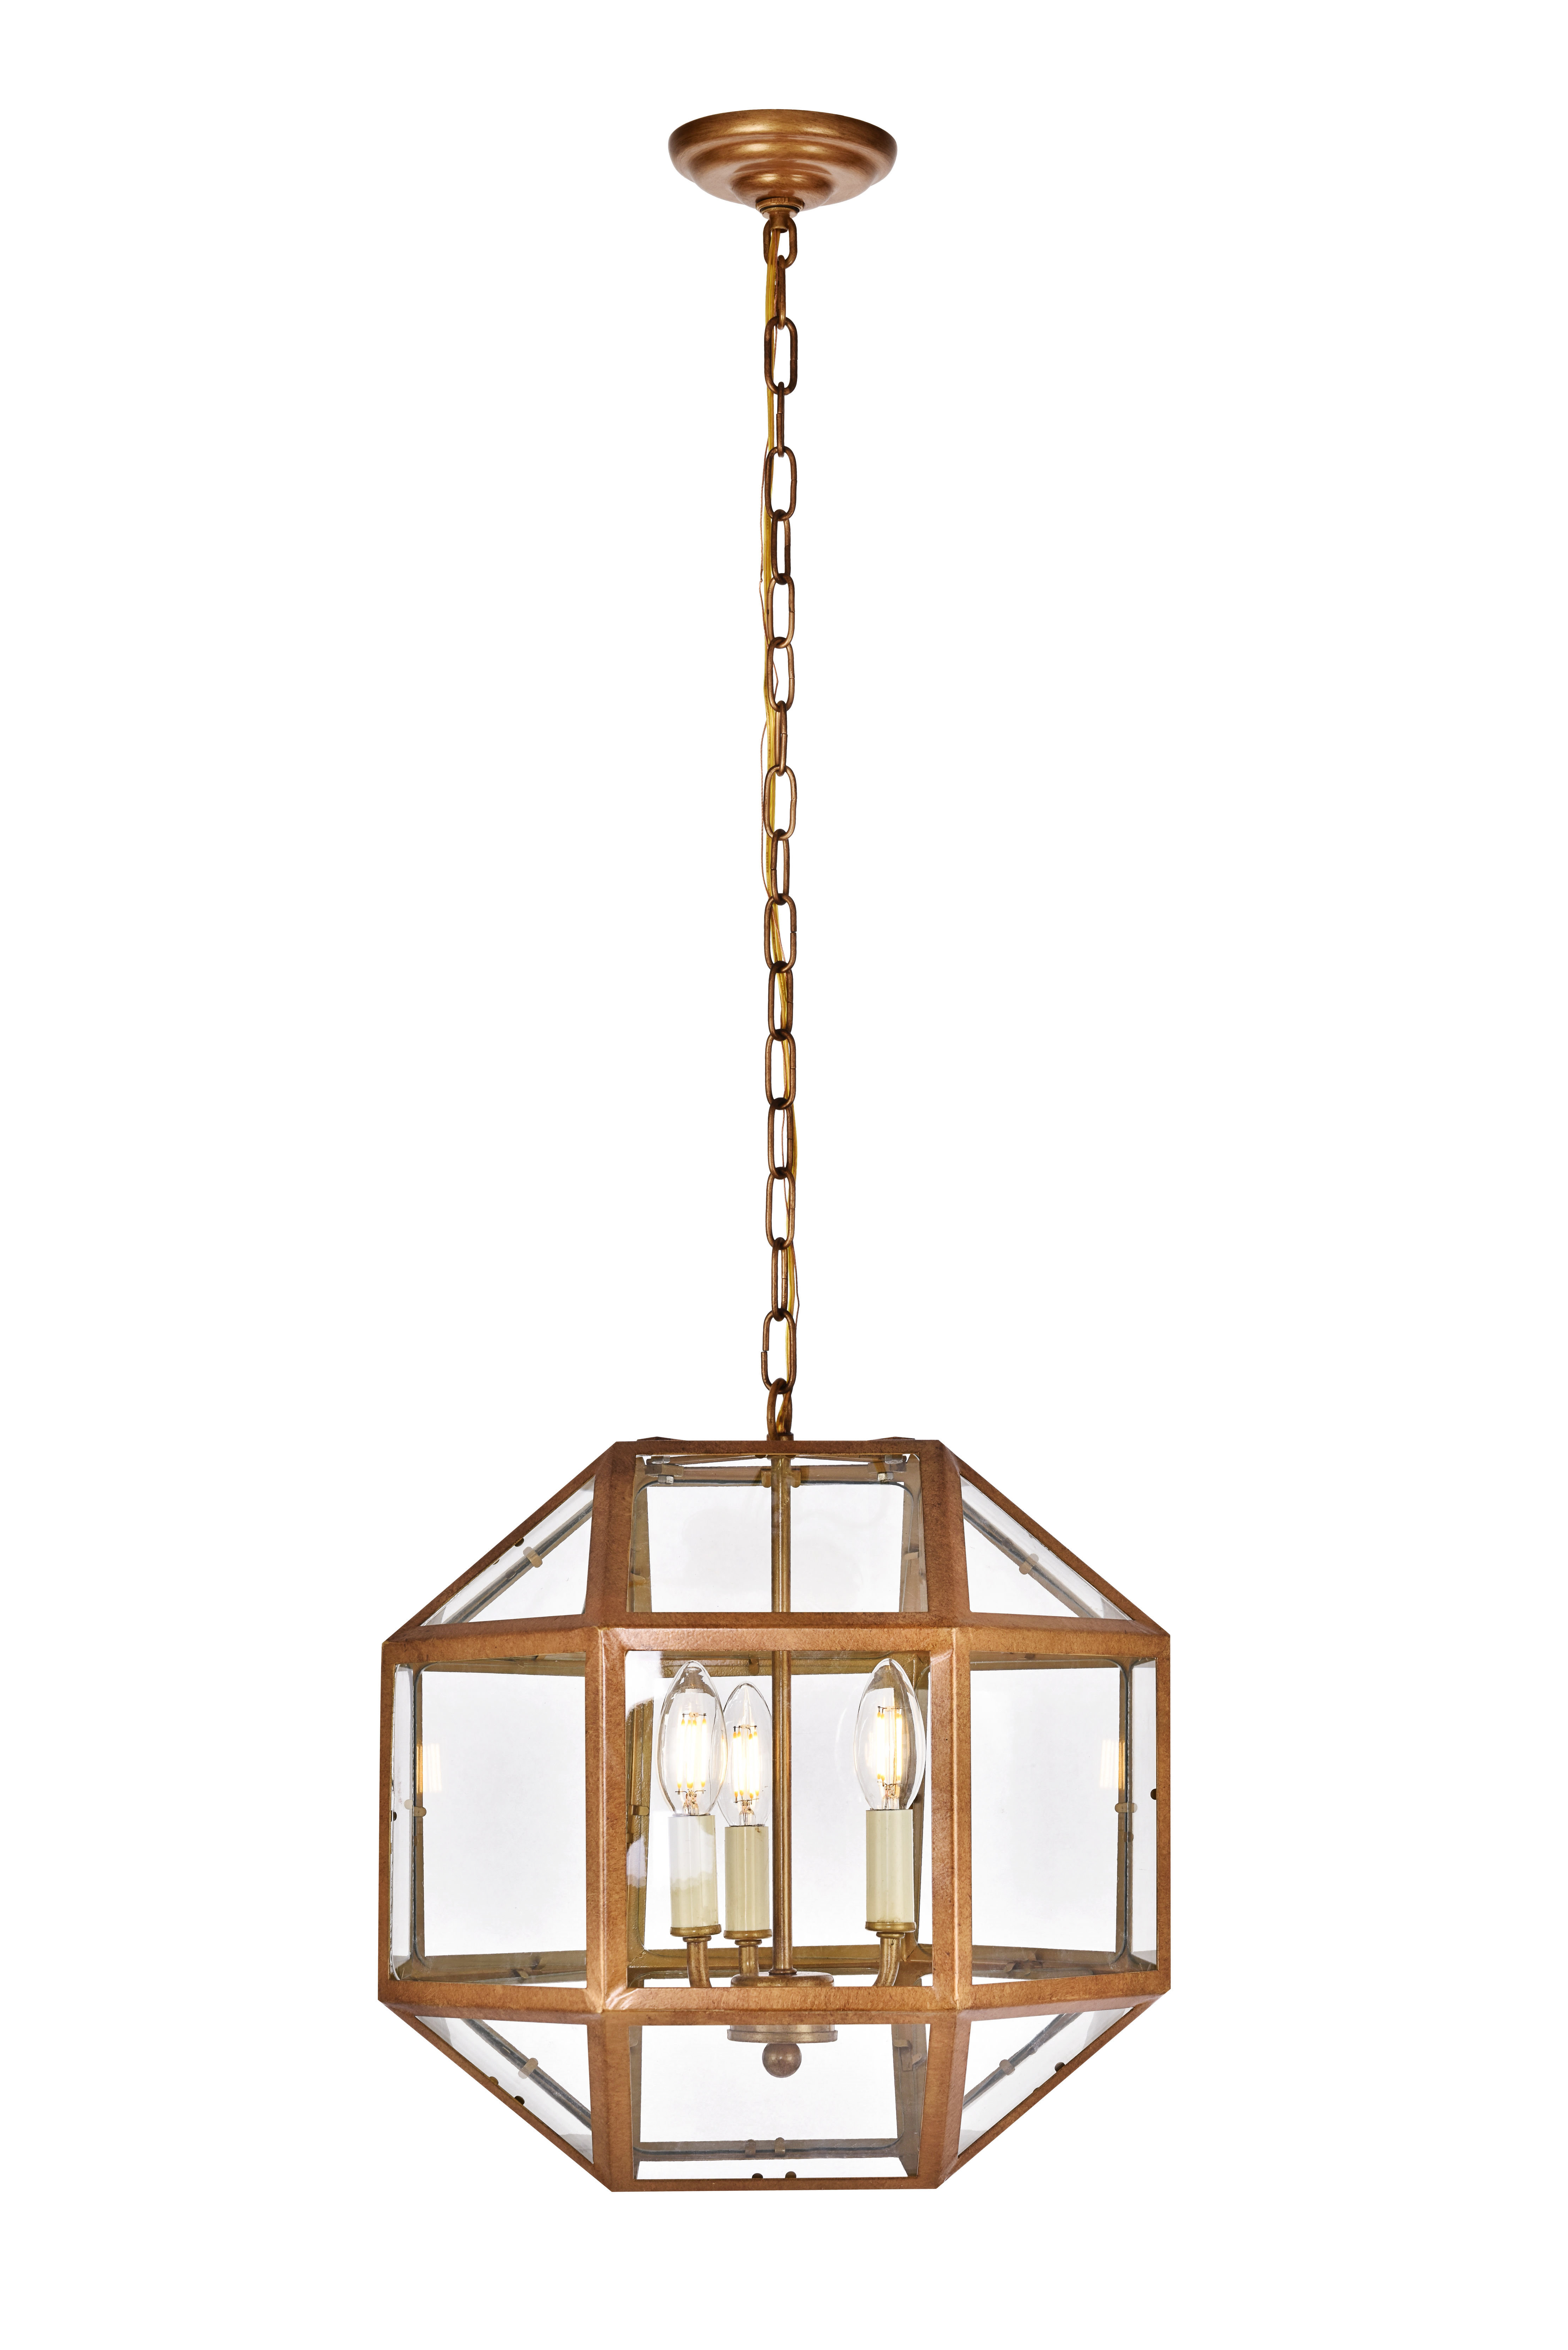 Famous Burkeville 3 Light Geometric Chandelier Within Shipststour 3 Light Globe Chandeliers (View 9 of 20)